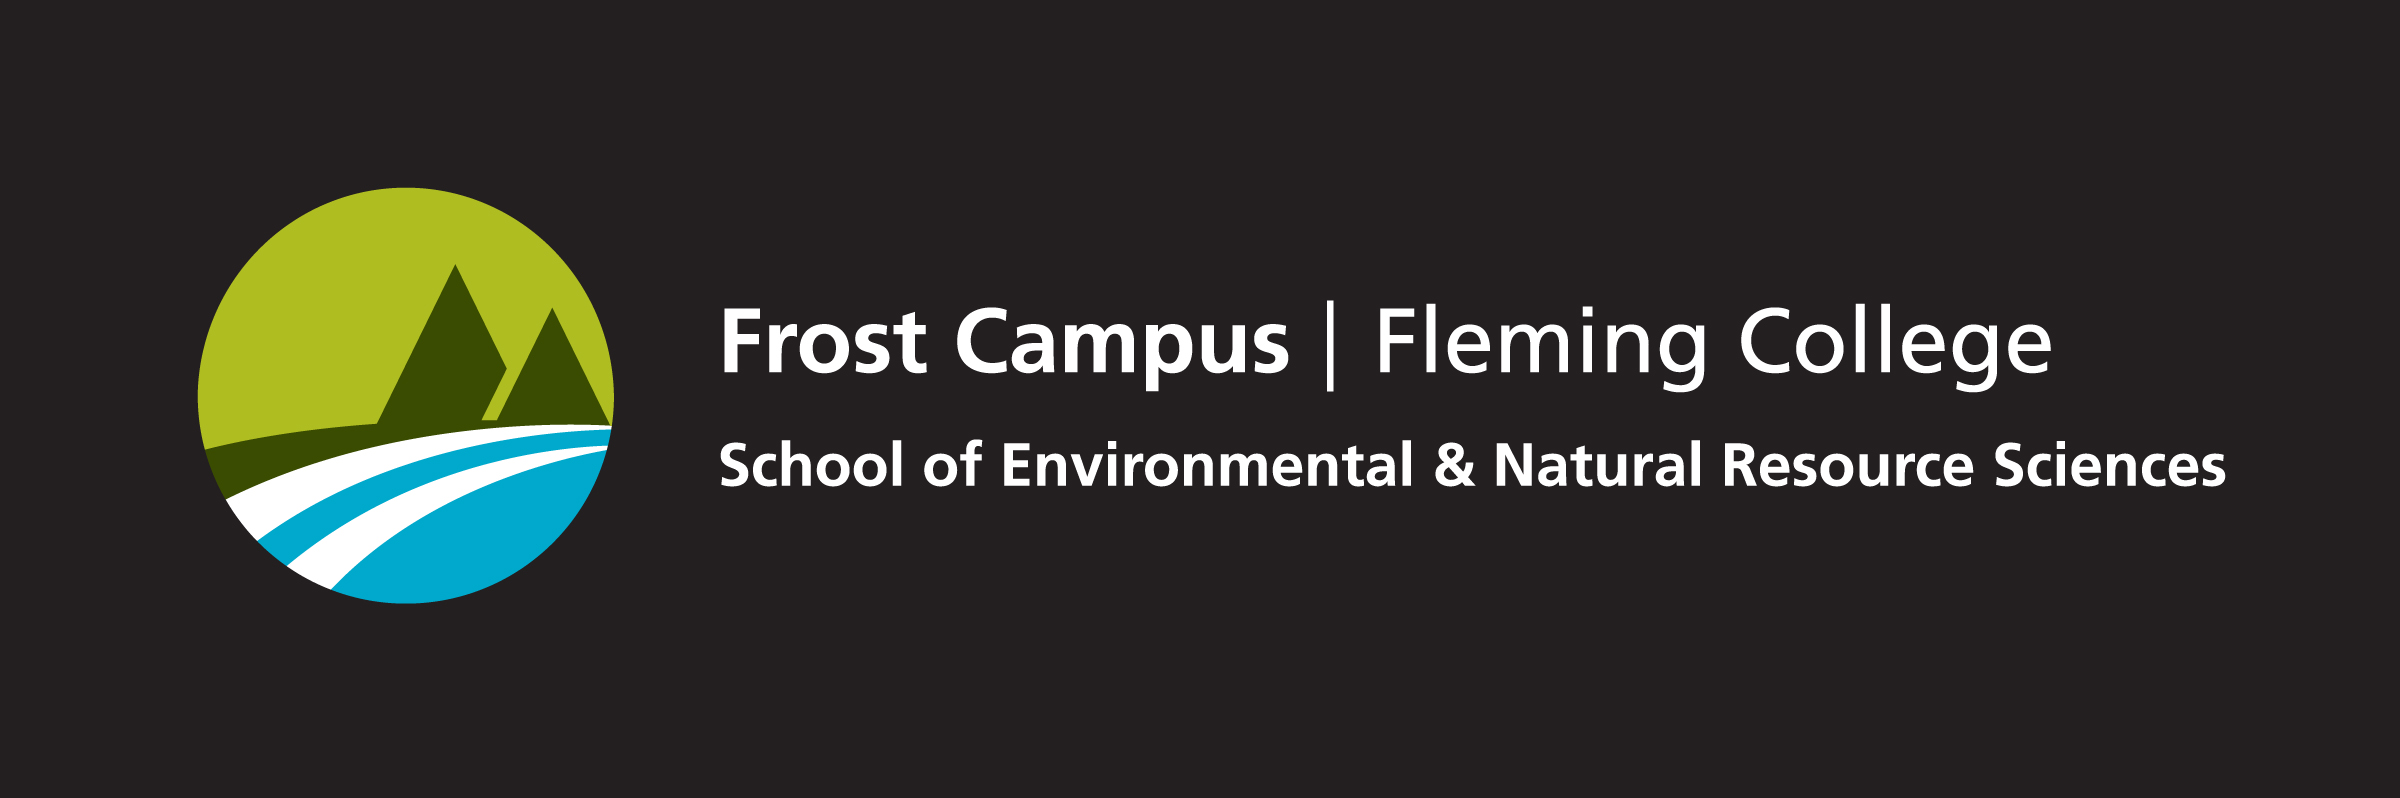 Frost Campus Virtual Tour Portal